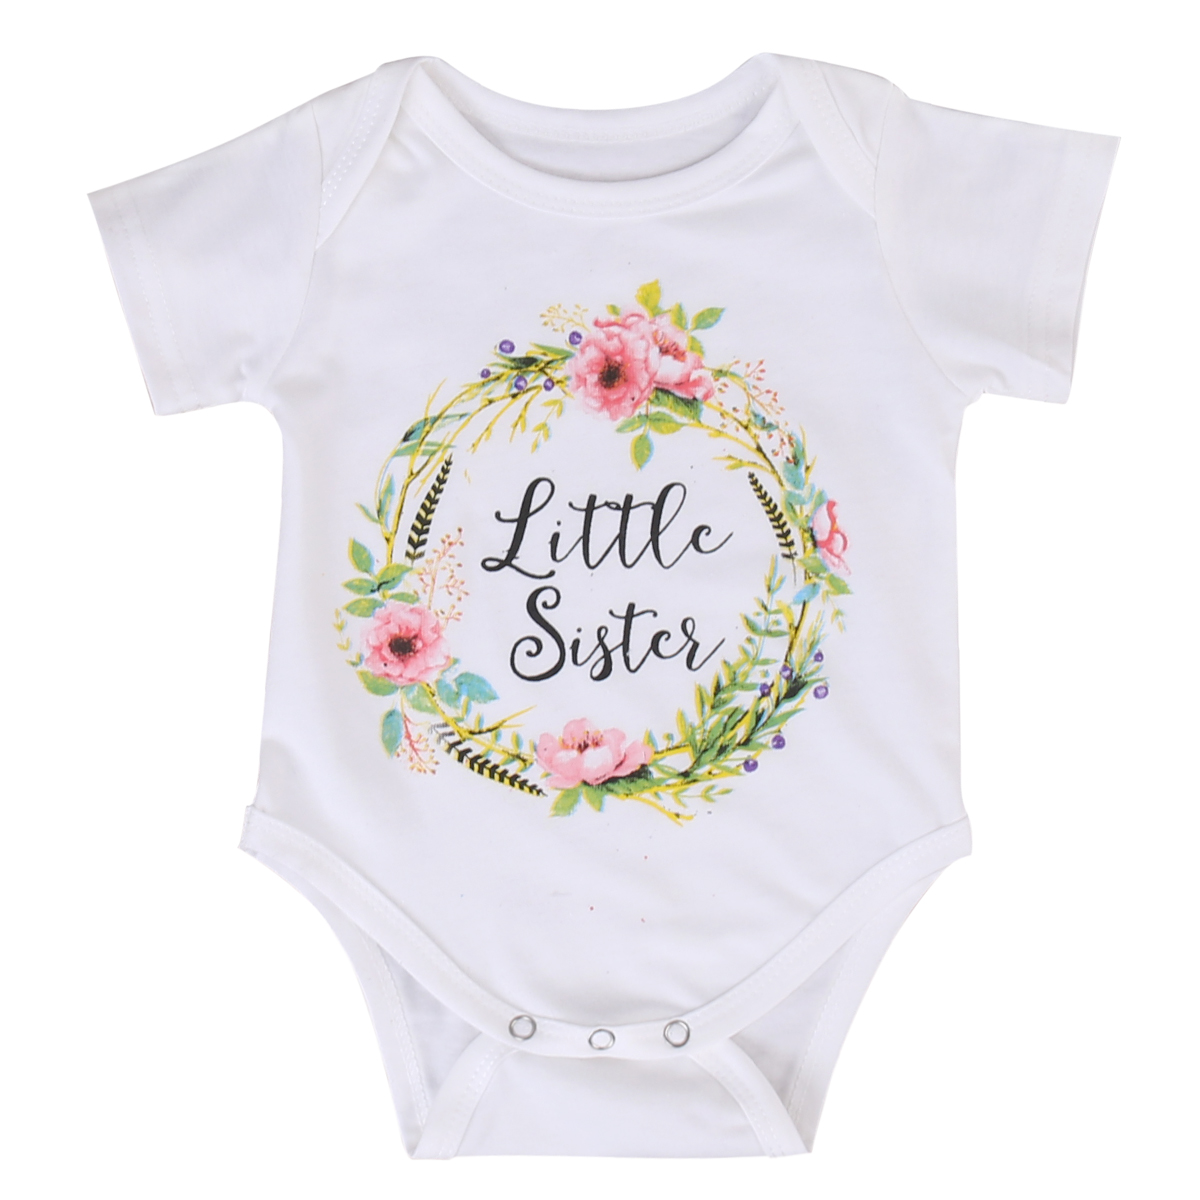 New Adorable Casual Baby Kid Girl Little Big Sister Cotton Clothes Jumpsuit Romper Outfits T-Shirt Summer Clothes New Adorable Casual Baby Kid Girl Little Big Sister Cotton Clothes Jumpsuit Romper Outfits T-Shirt Summer Clothes